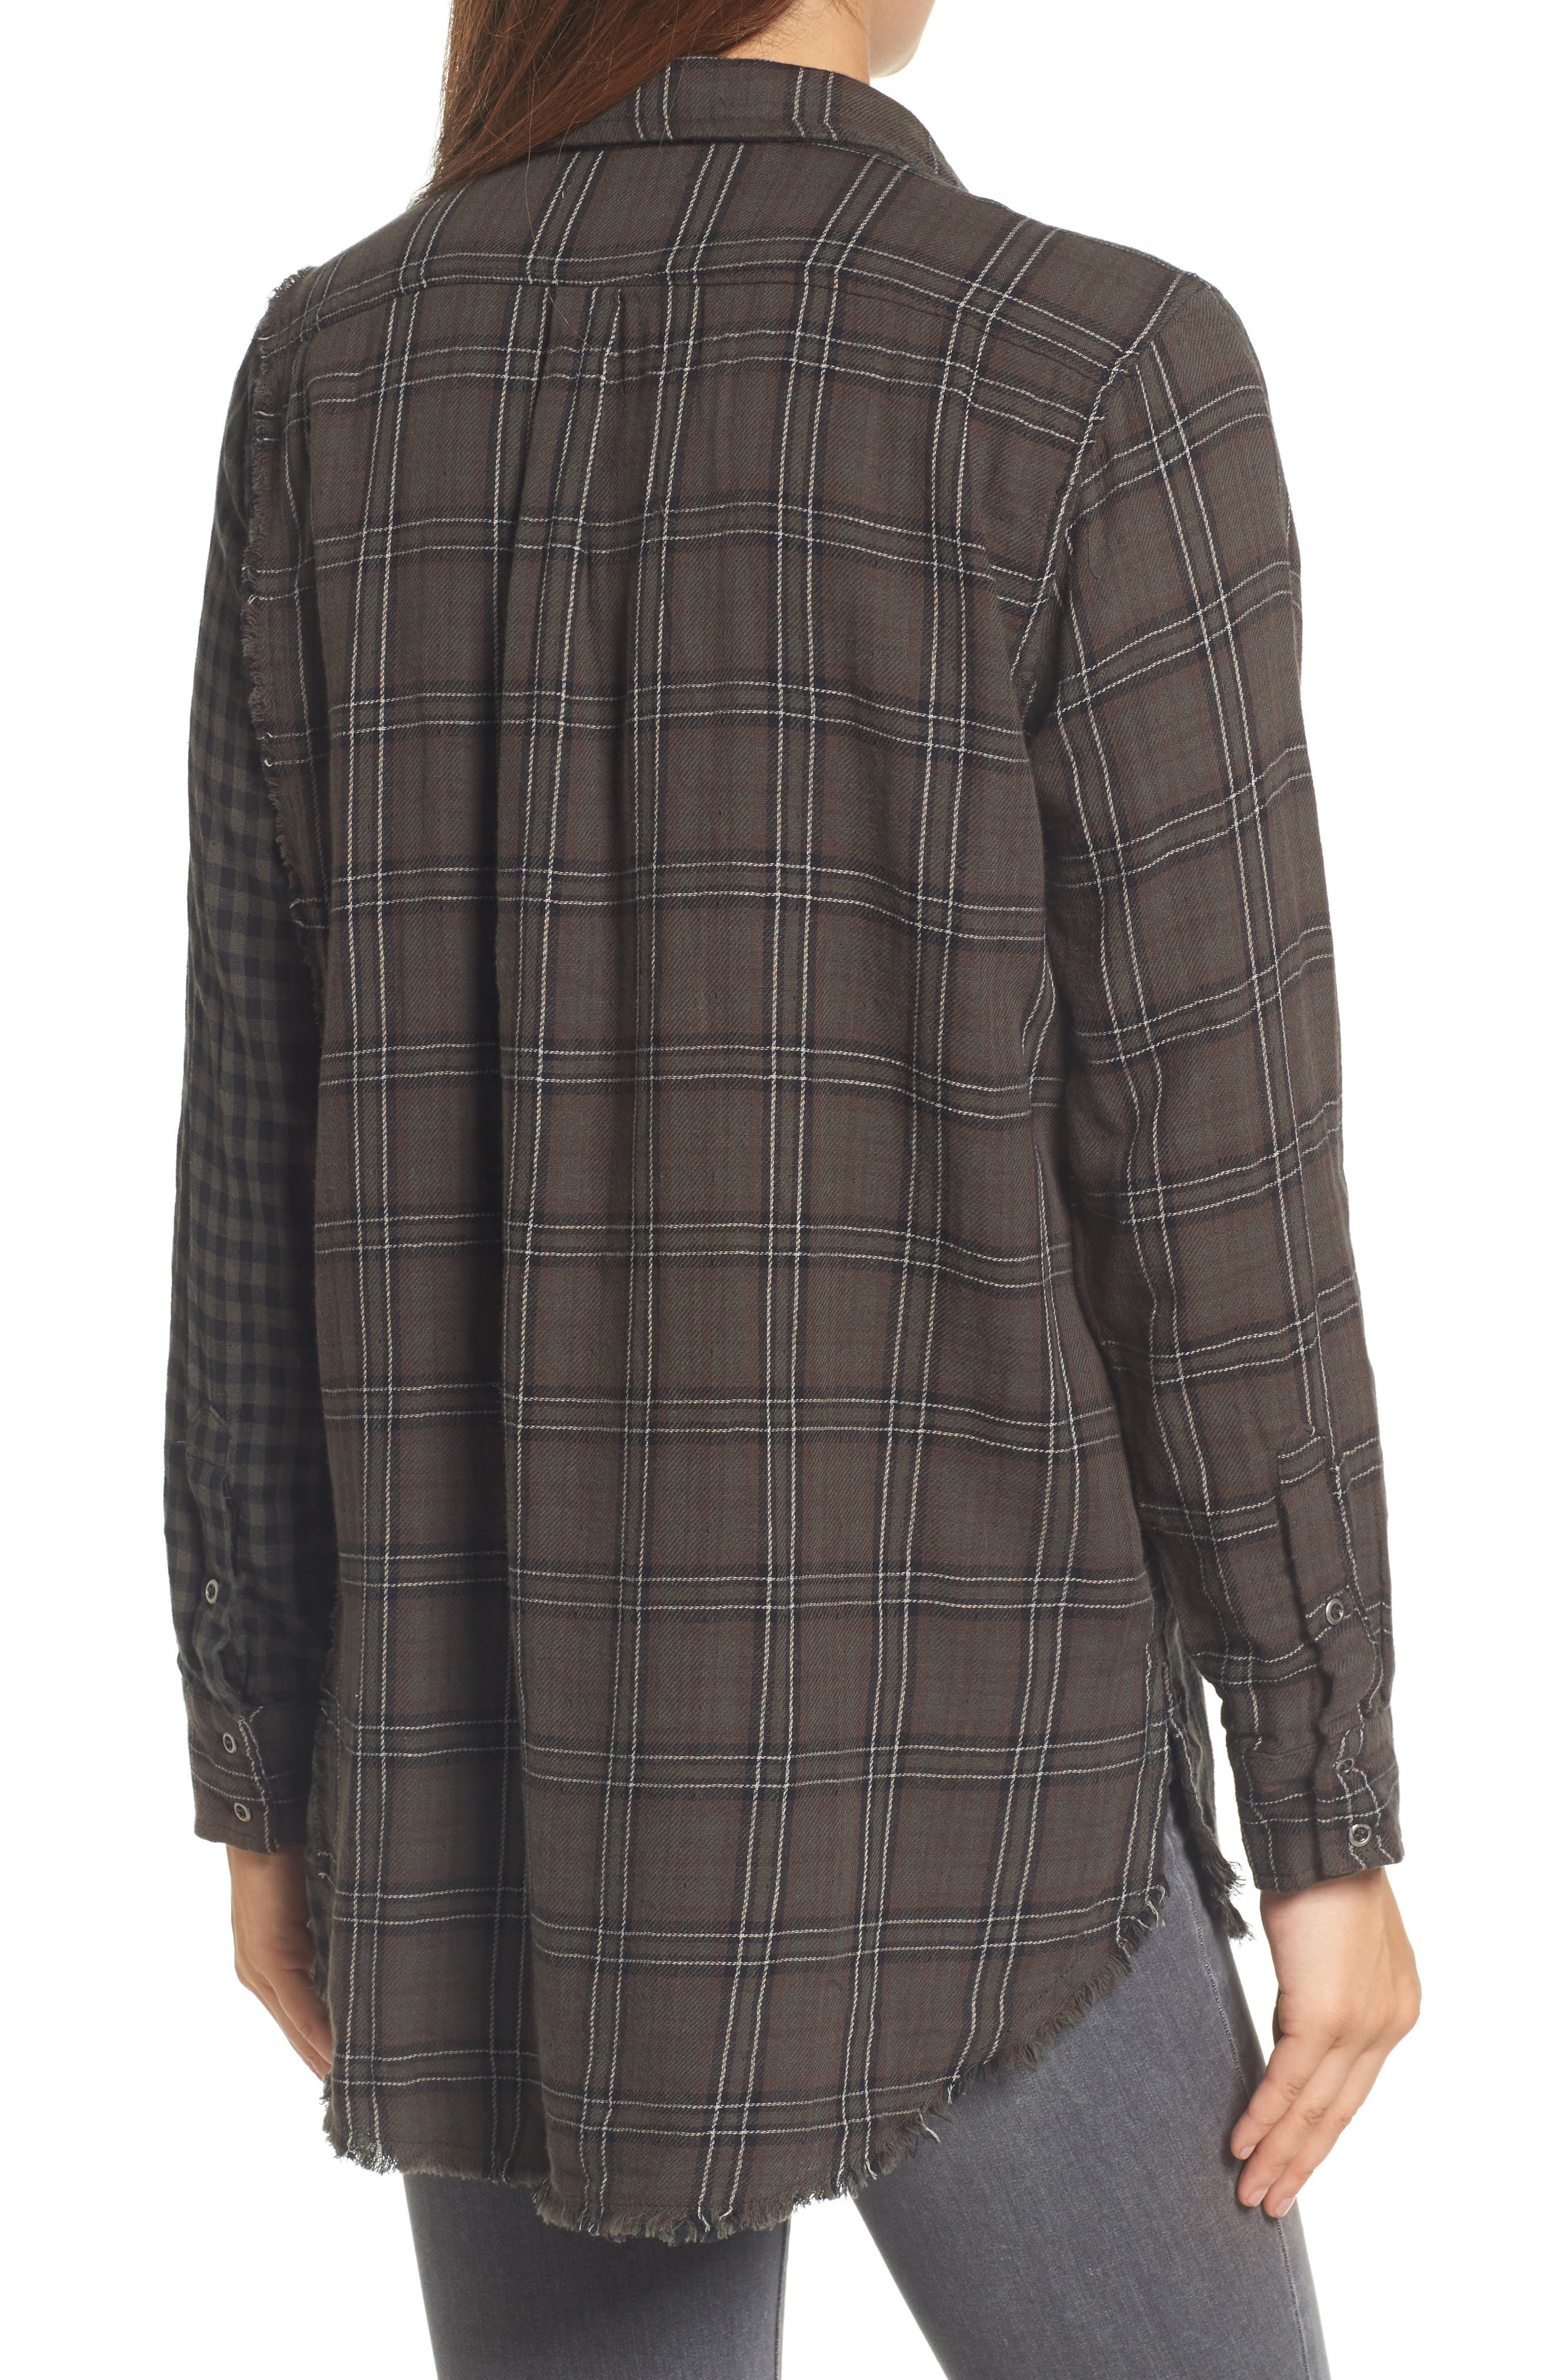 Alternate Image 2  - Wit & Wisdom Contrast Sleeve Button-Down Top (Nordstrom Exclusive)